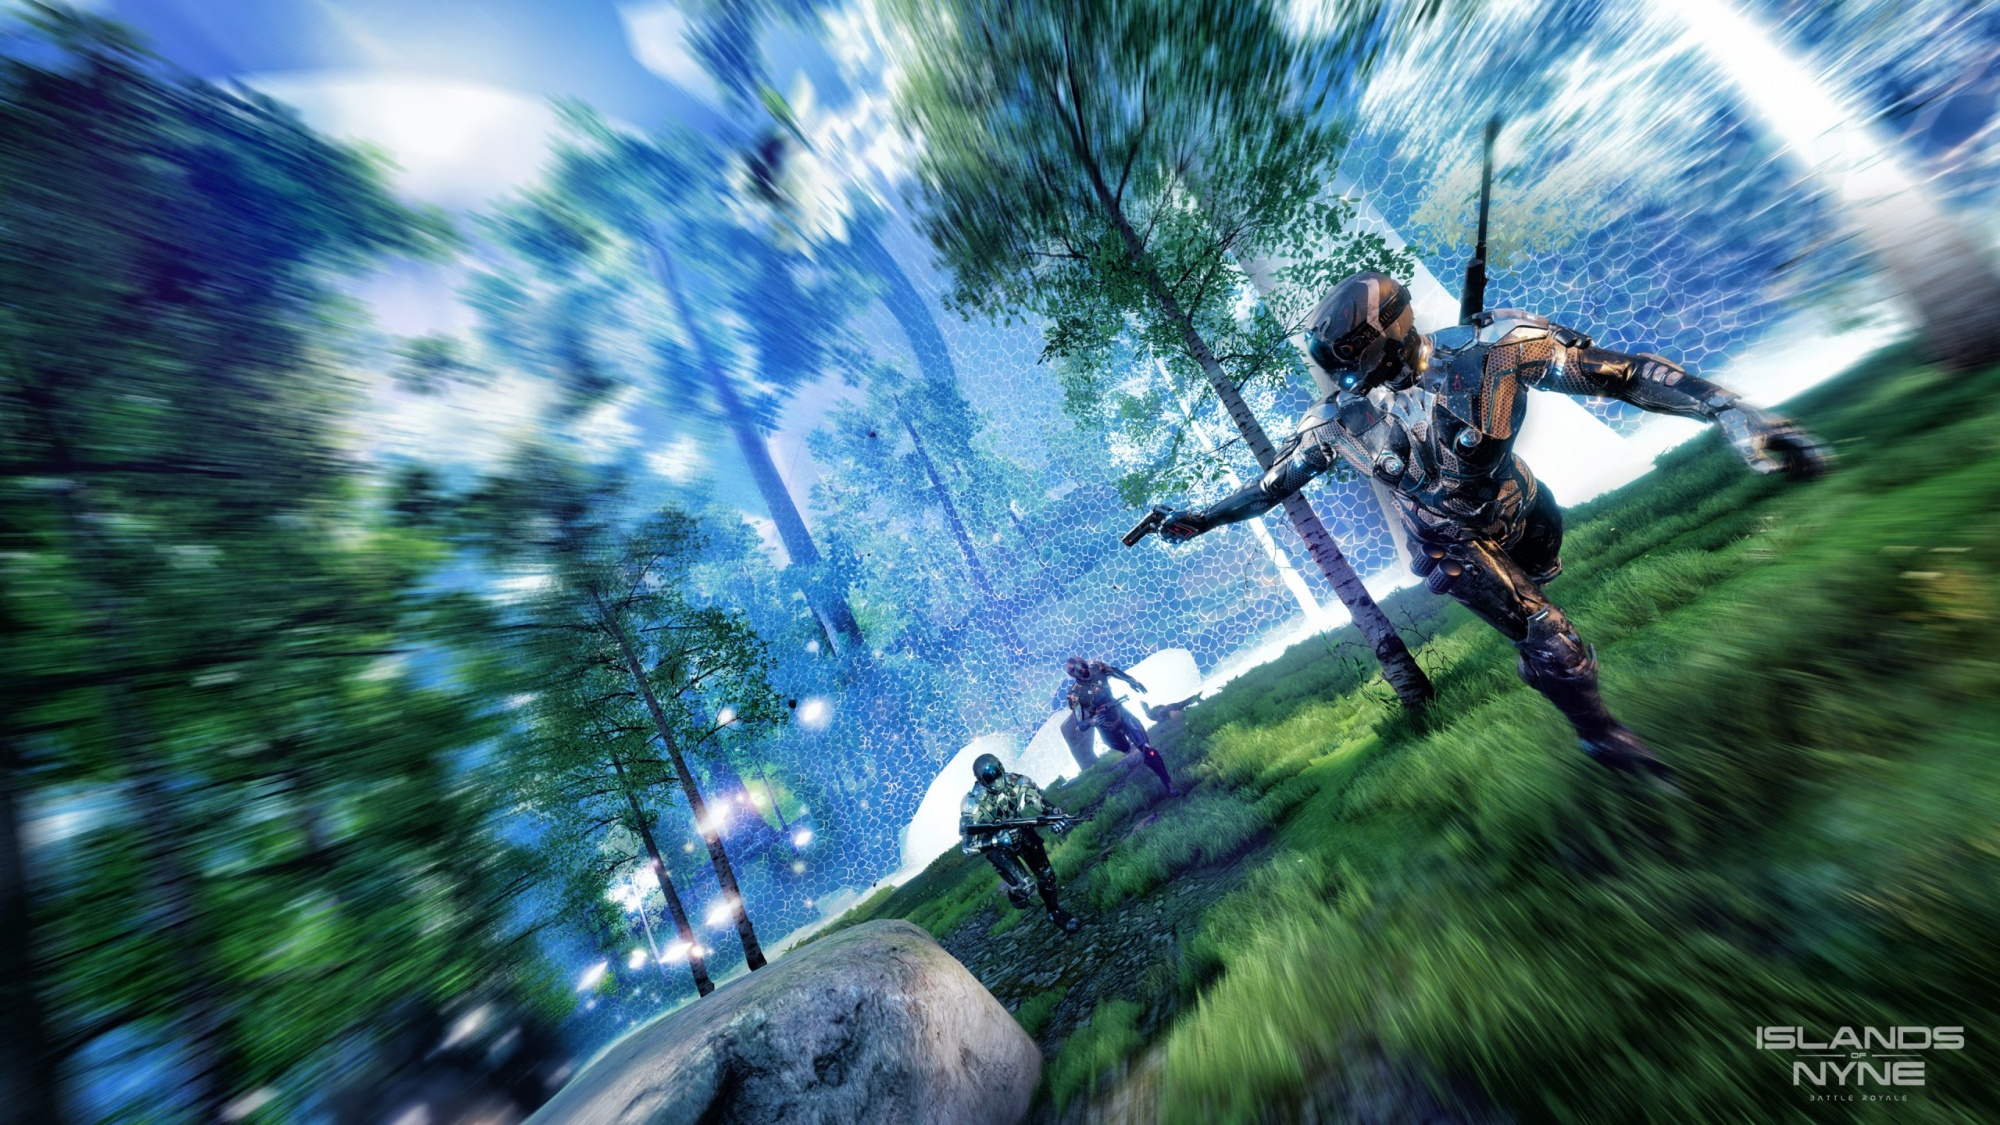 Islands of Nyne: Battle Royale Official Site